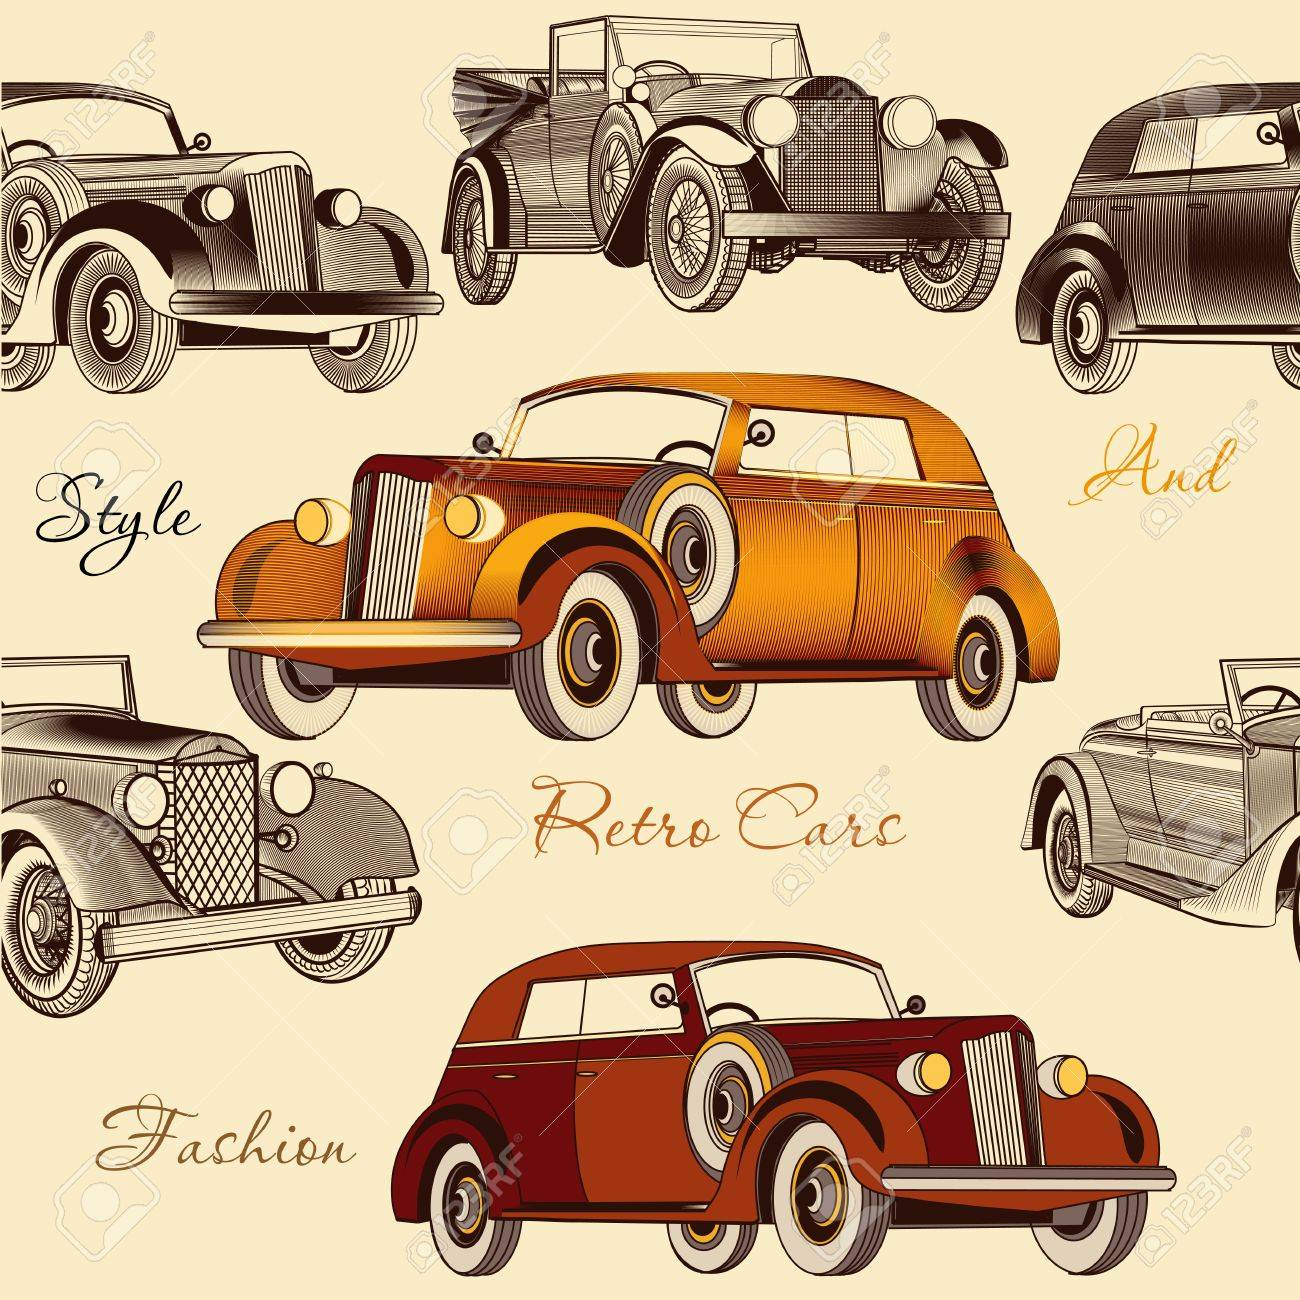 Download and use 30,000+ 4k wallpaper stock photos for free. Vintage Seamless Wallpaper Pattern With Retro Cars Royalty Free Cliparts Vectors And Stock Illustration Image 30820100